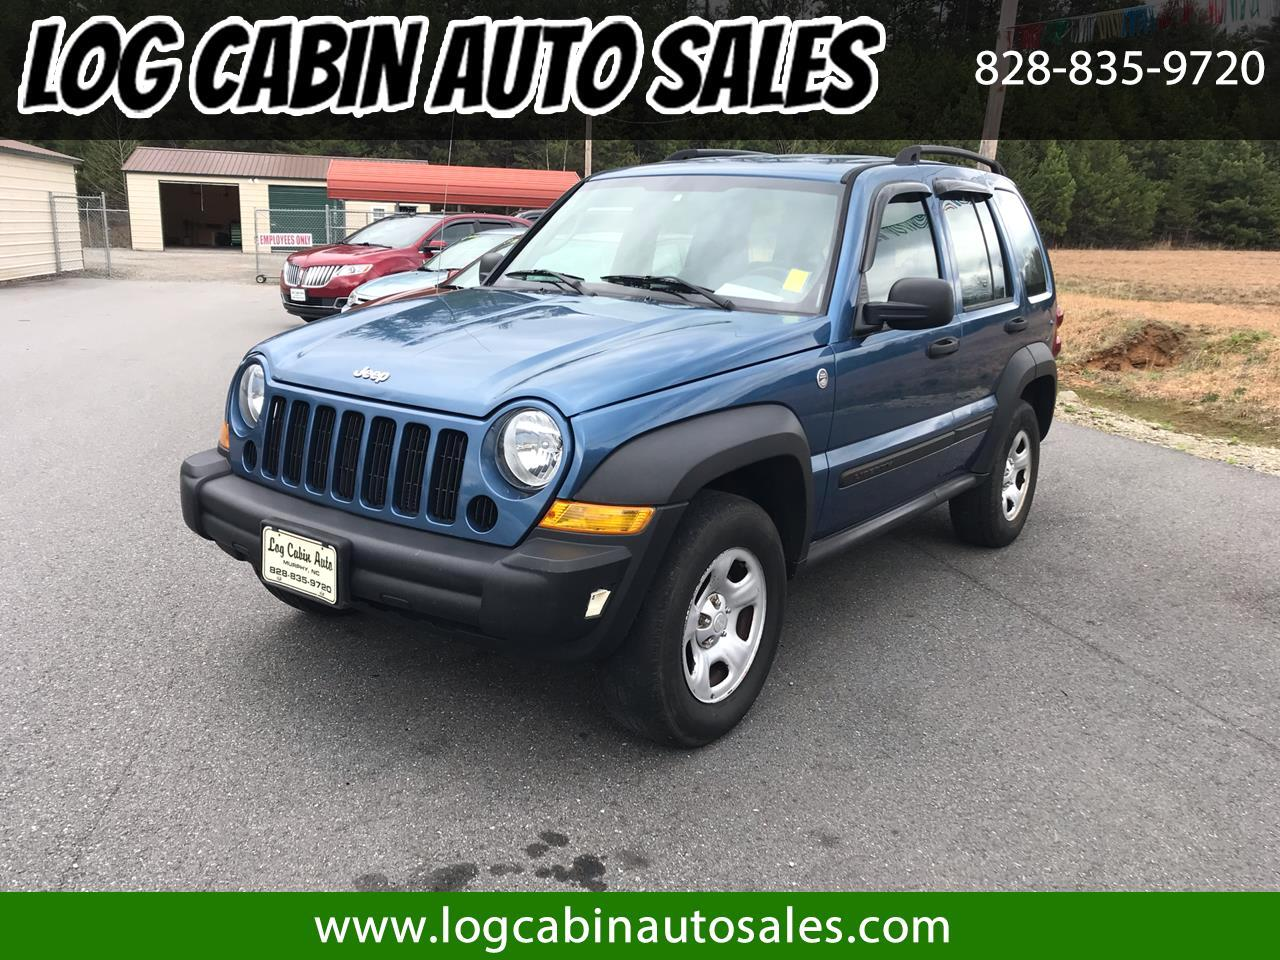 2006 Jeep LIBERTY SP